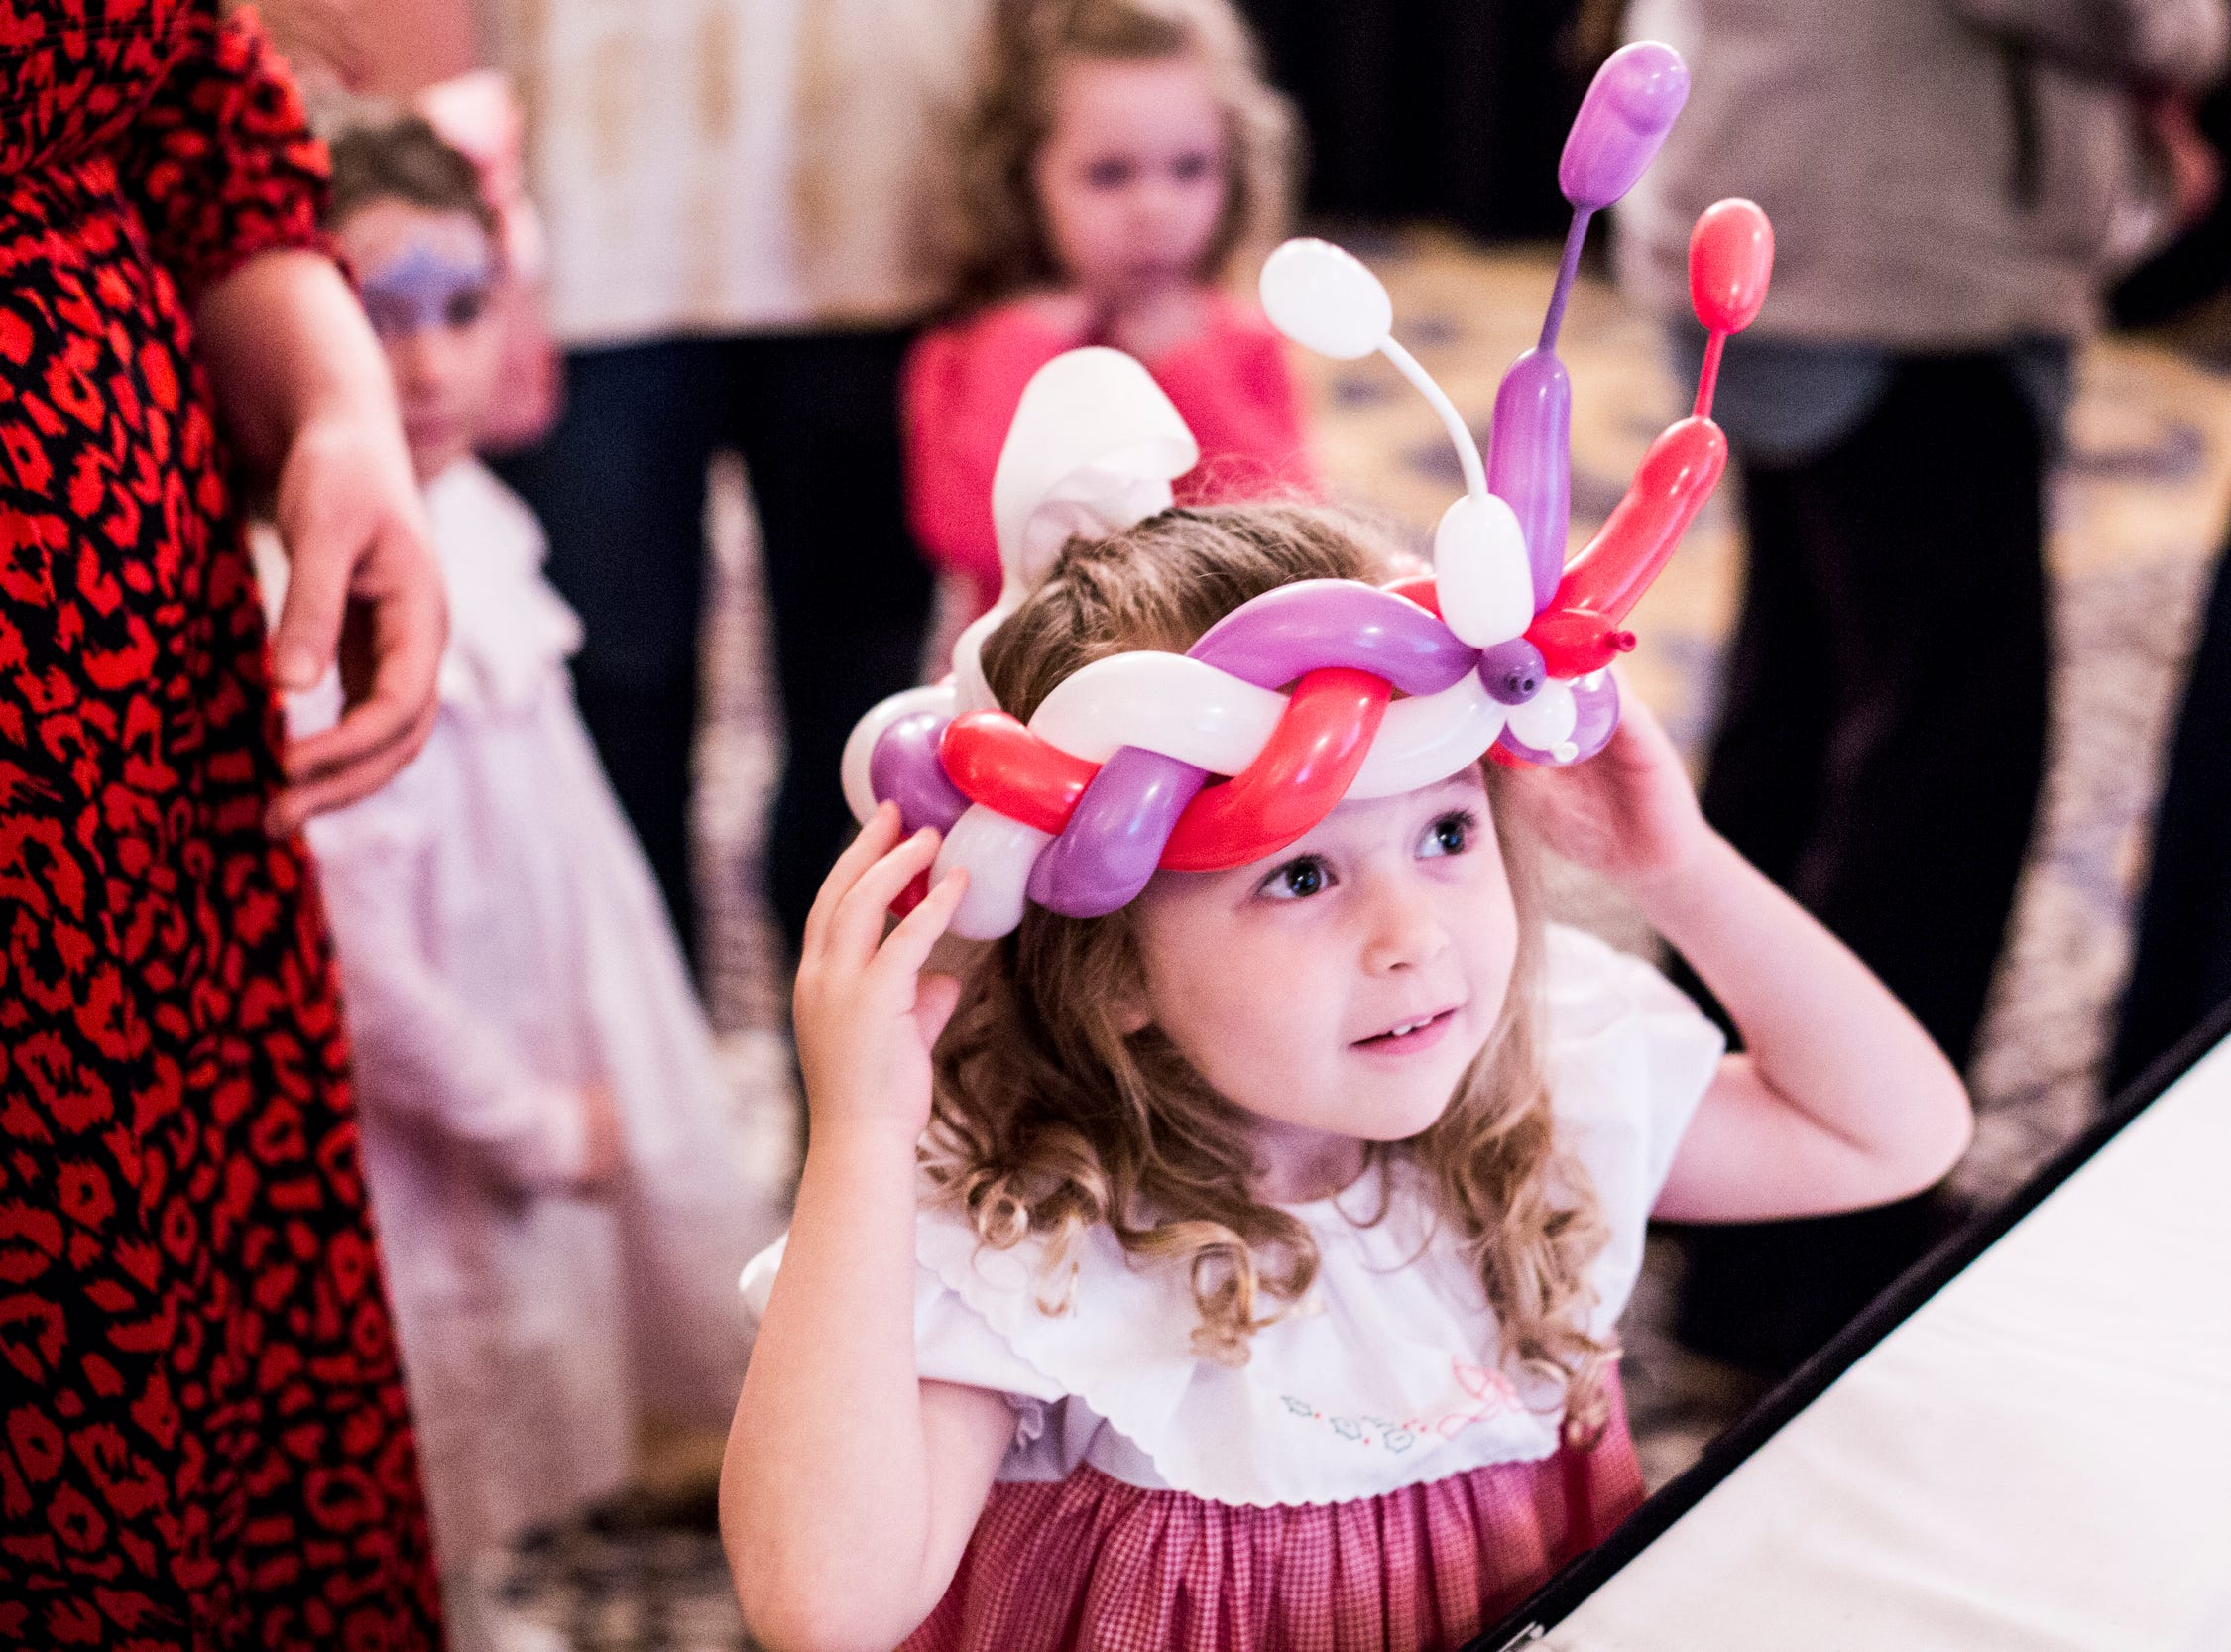 December 02 2018 - Rose Walker, 4, tries on her balloon crown during the Memphis Jingle Bell Ball Holiday Cookie Party inside of the Continental Ballroom at the Peabody Hotel on Sunday. This was the 30th anniversary of the Jingle Bell Ball.